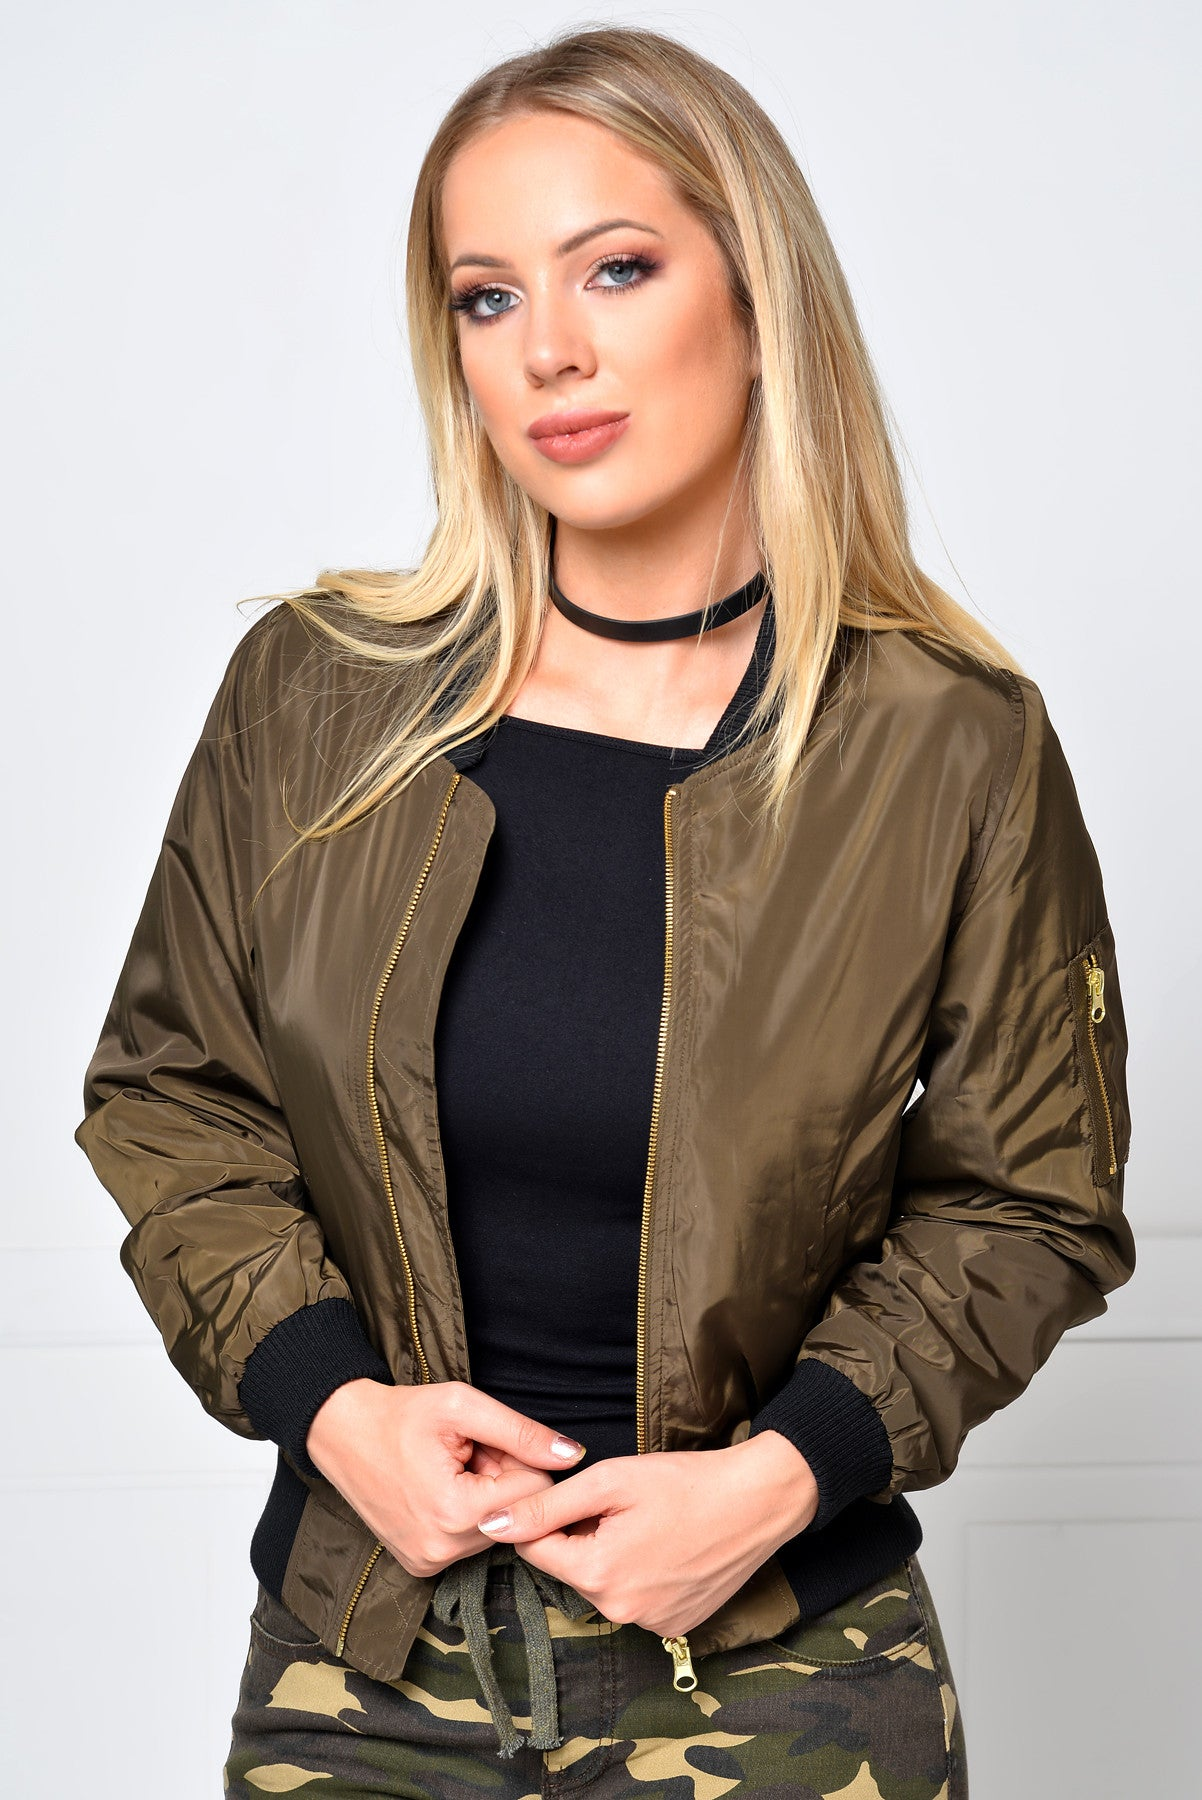 Limitless Olive Bomber Jacket - Fashion Effect Store  - 1